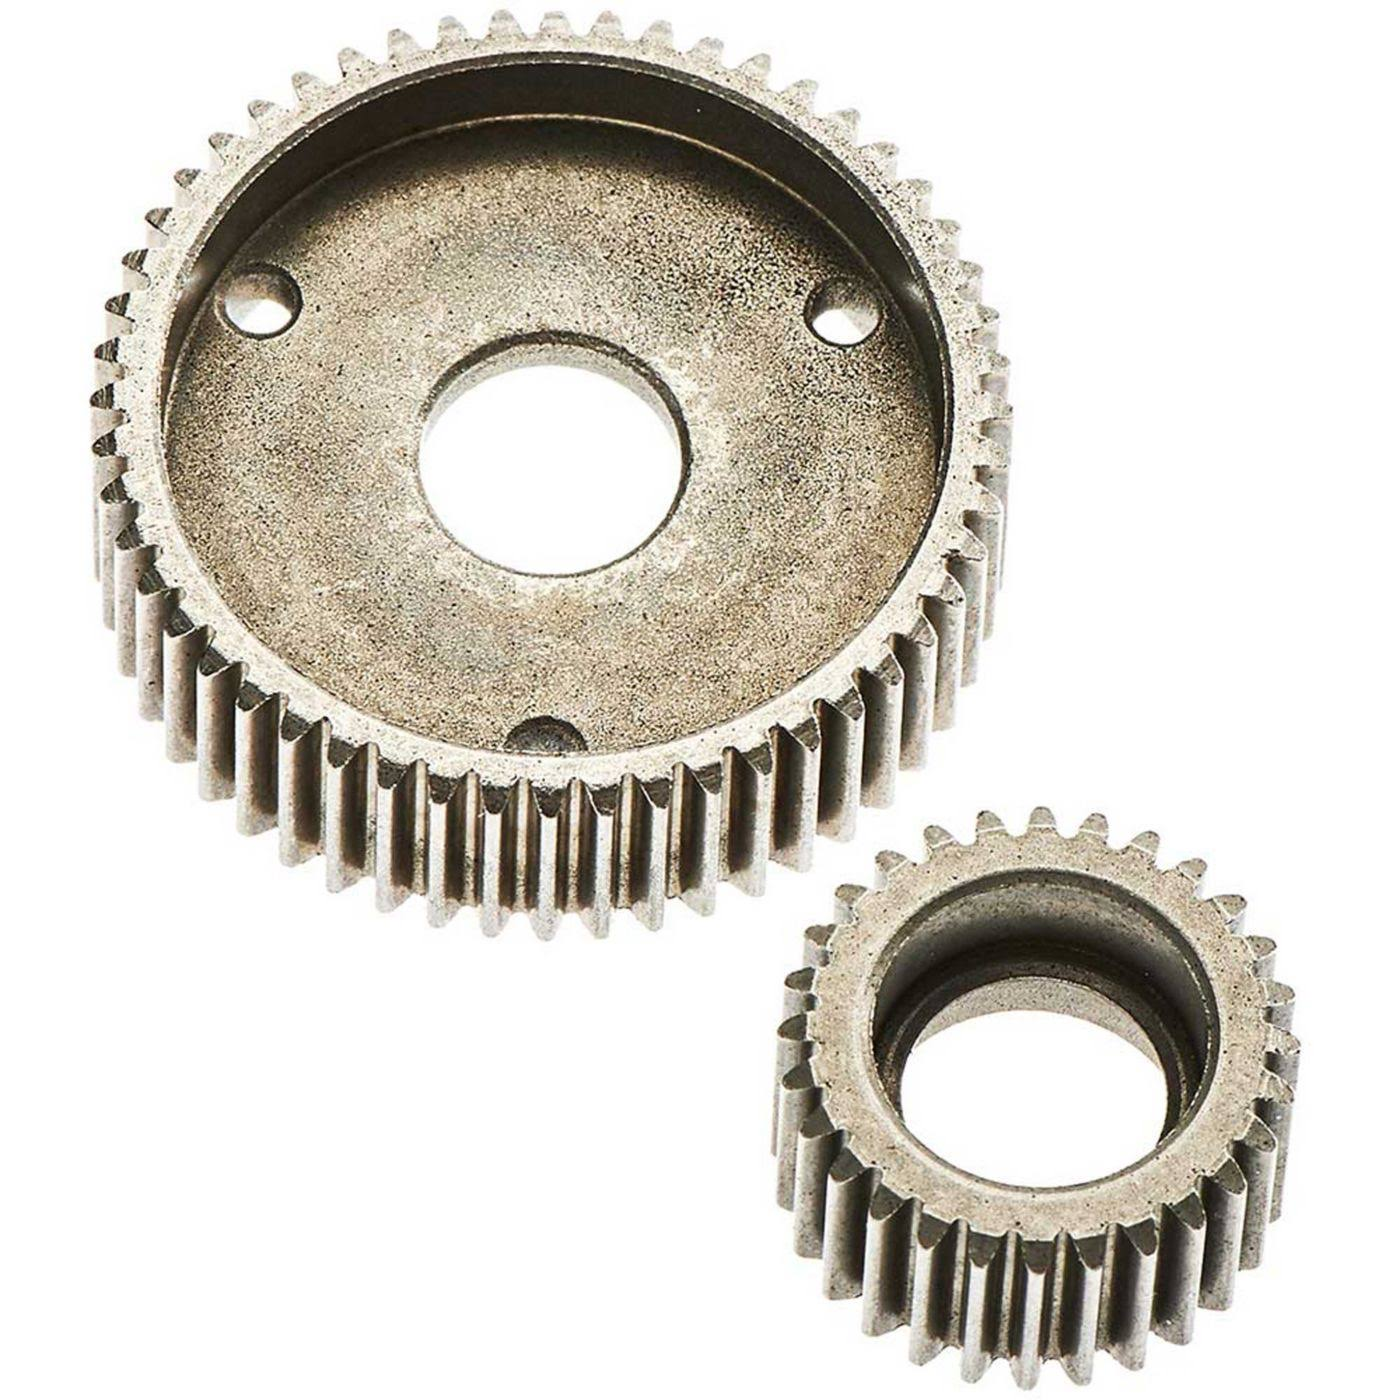 Axial Racing Ax31585 Gear Set - 48p, 28t and 52t